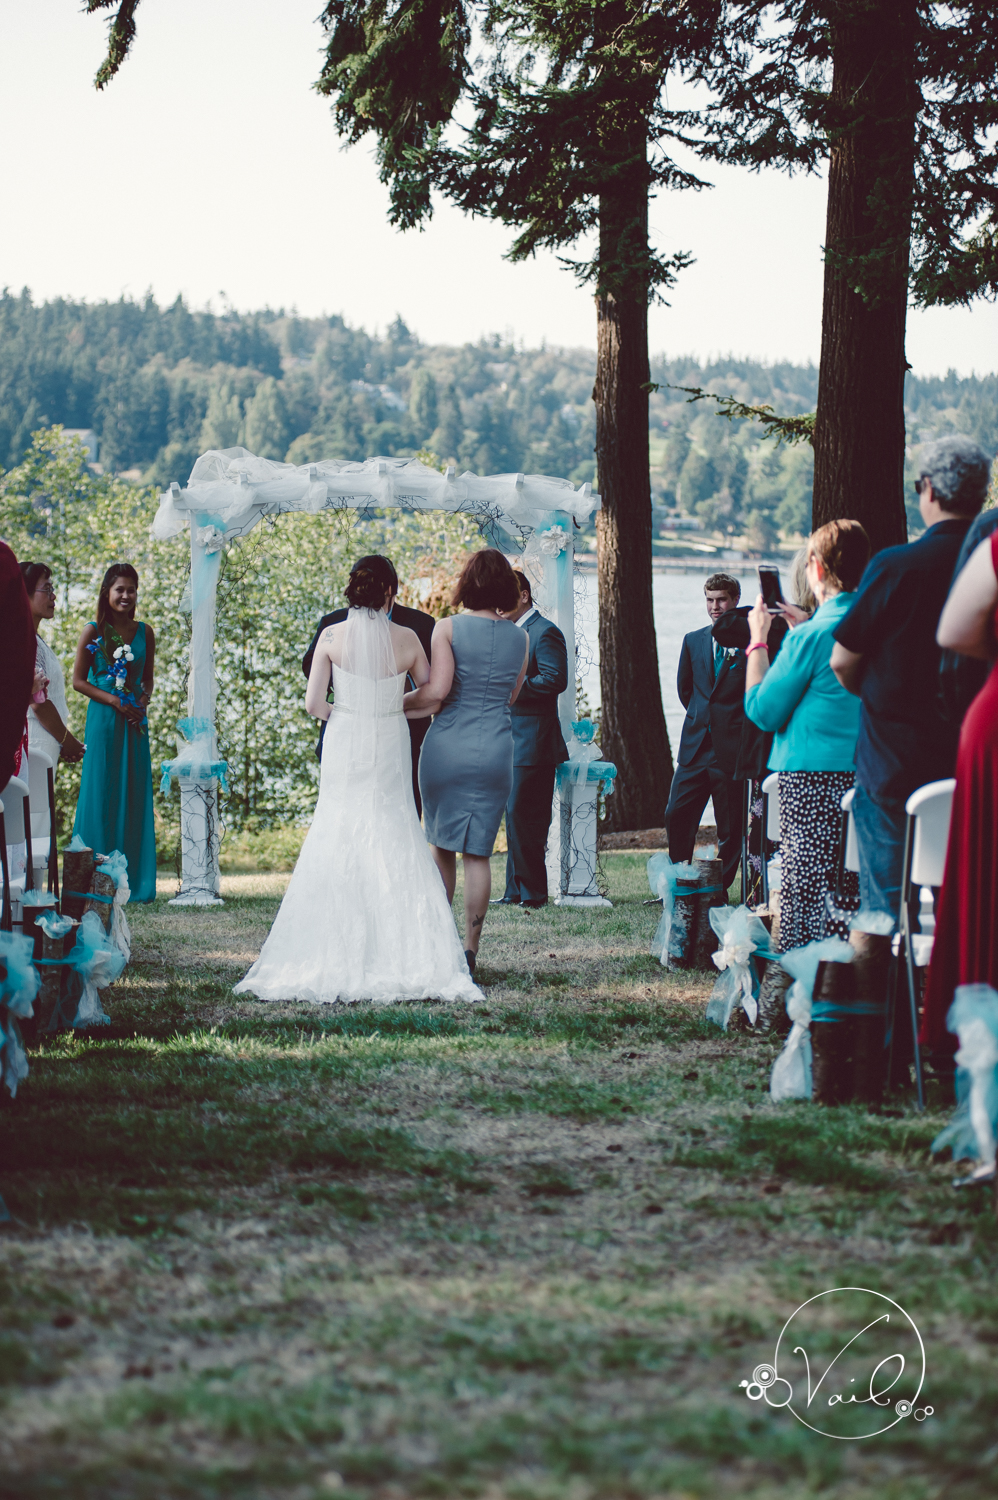 Freeland Hall Whidbey Island wedding-36.jpg